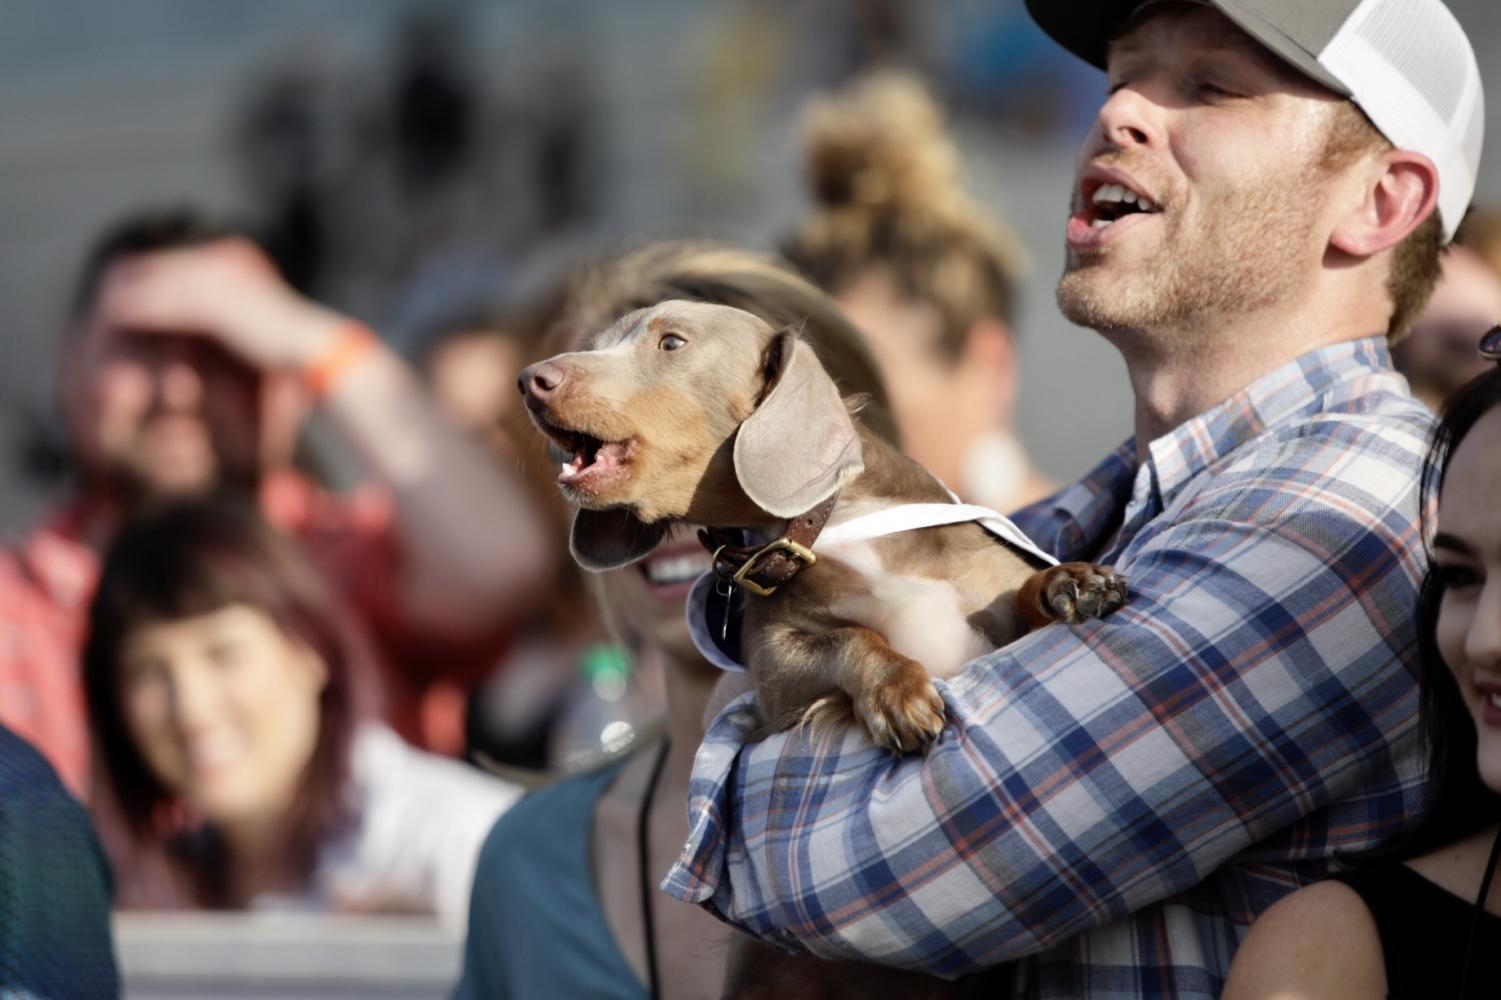 Douie and his owner, John Detrinis, celebrate their win at the Wiener Dog Races. Dentrinis used fried chicken to help lure Douie to the finish line.